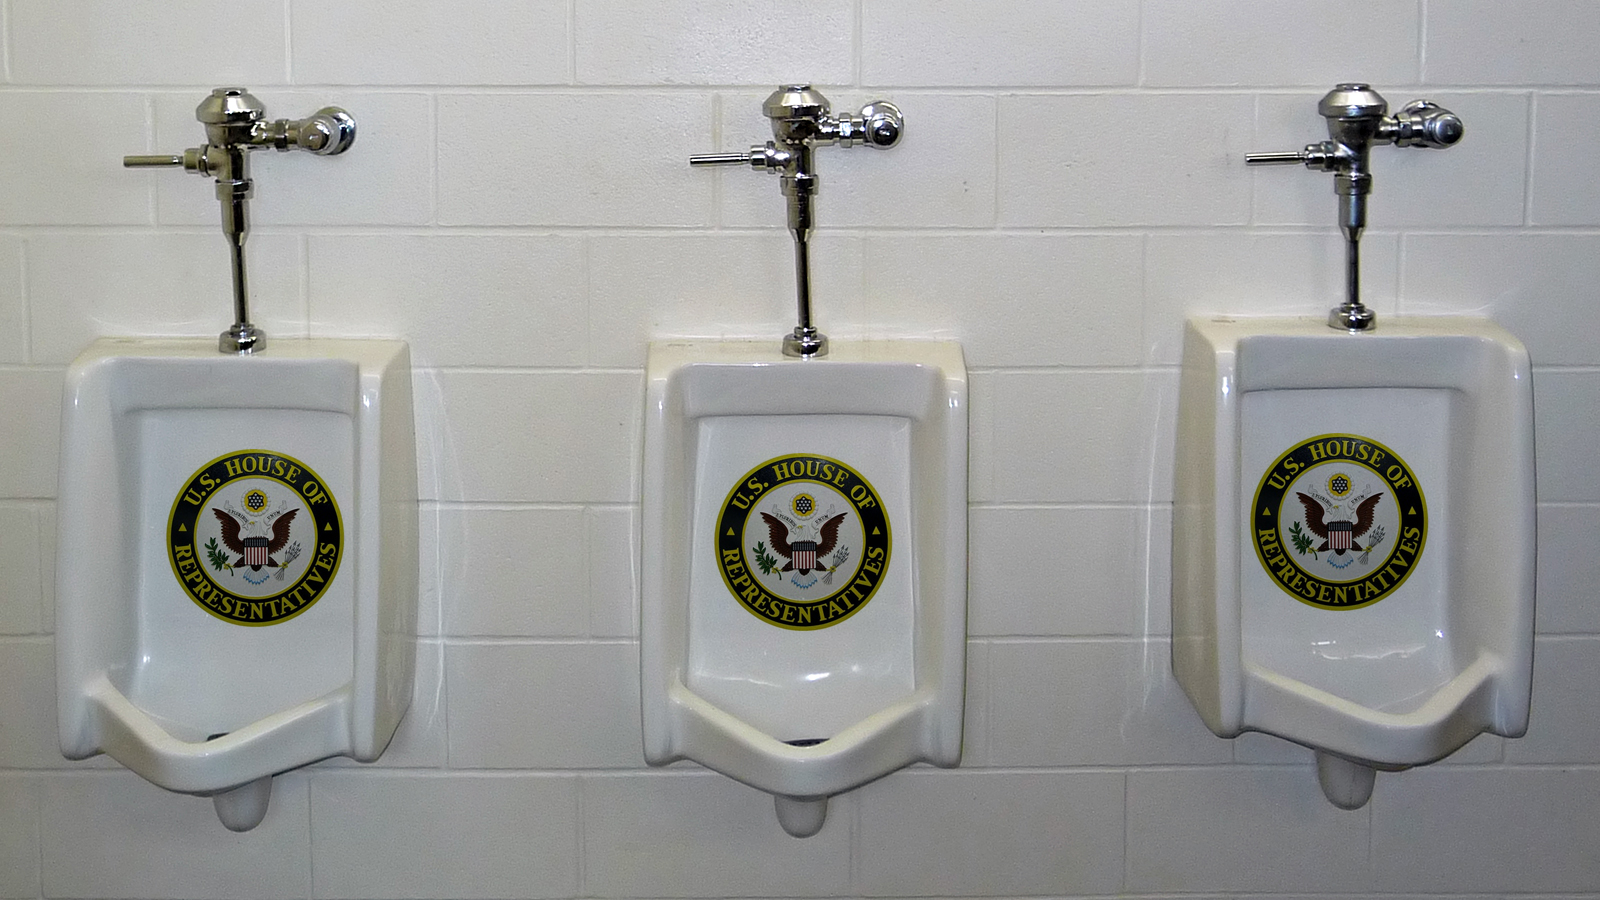 Click here to read House of Representatives' Urinal Explosion Drenches the Press